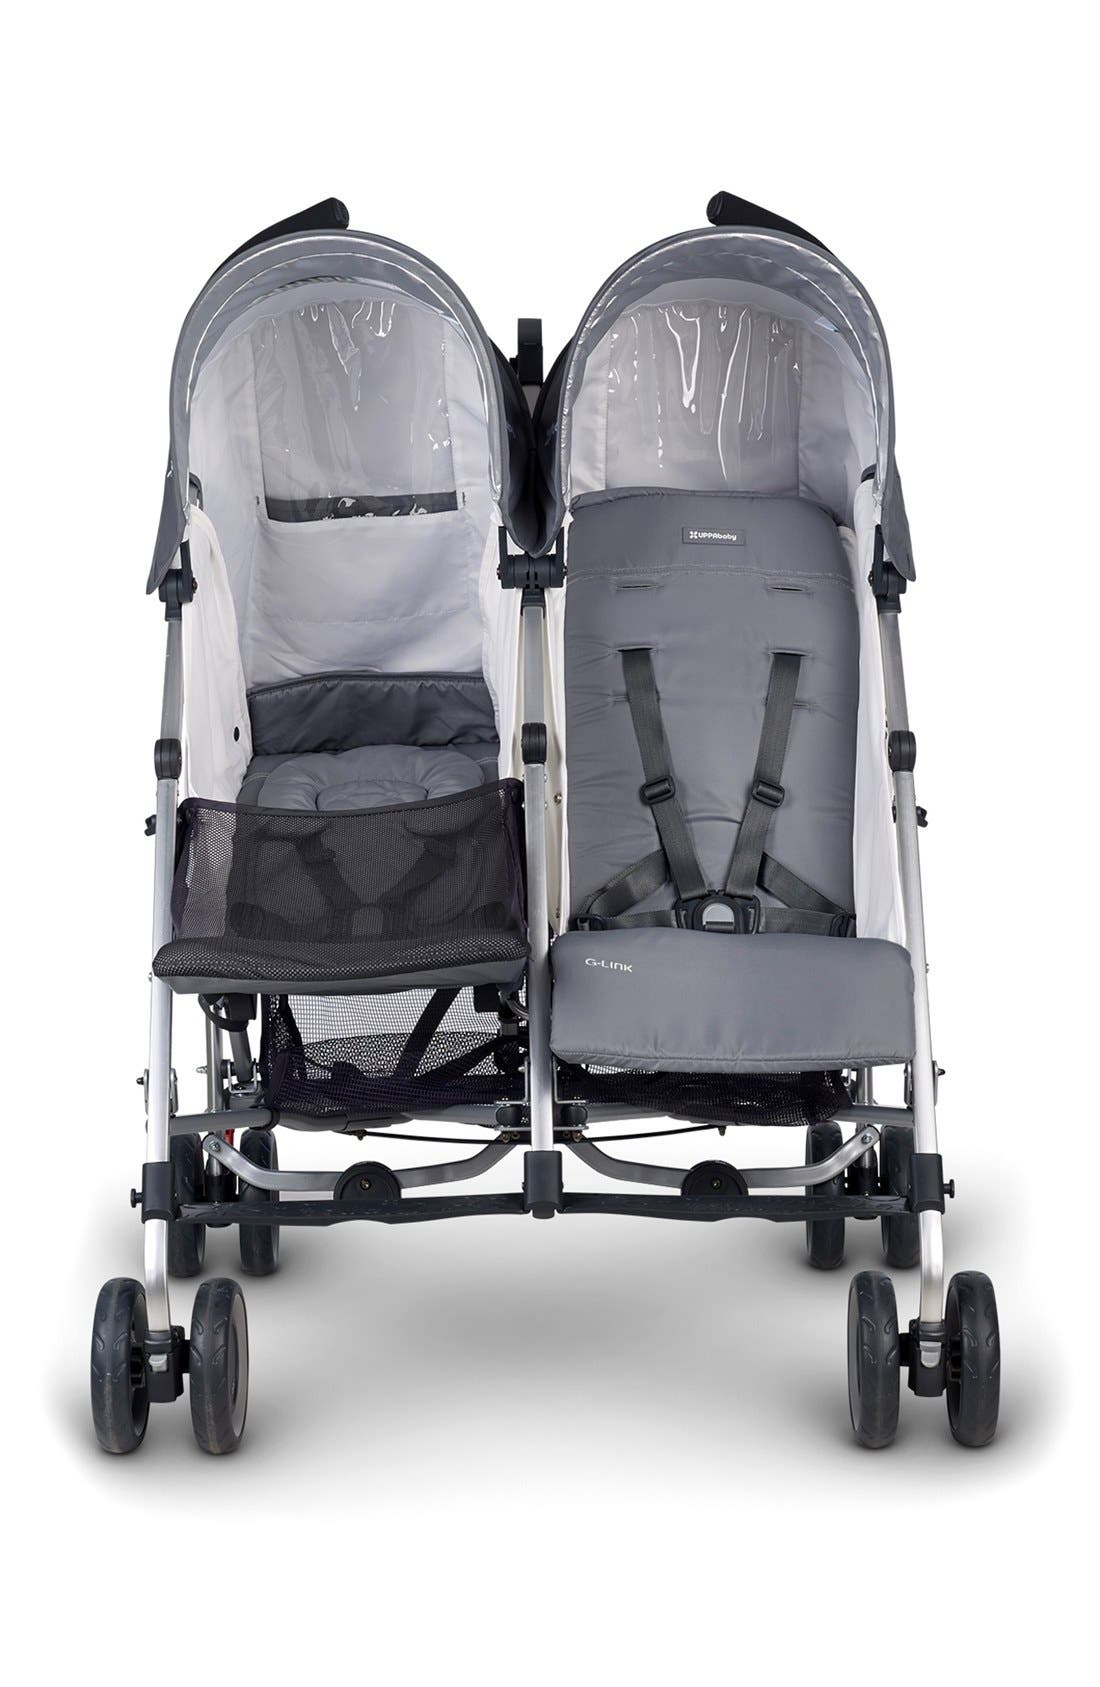 G-LINK Pascal Aluminum Frame Reclining Side by Side Umbrella Stroller,                             Alternate thumbnail 2, color,                             grey